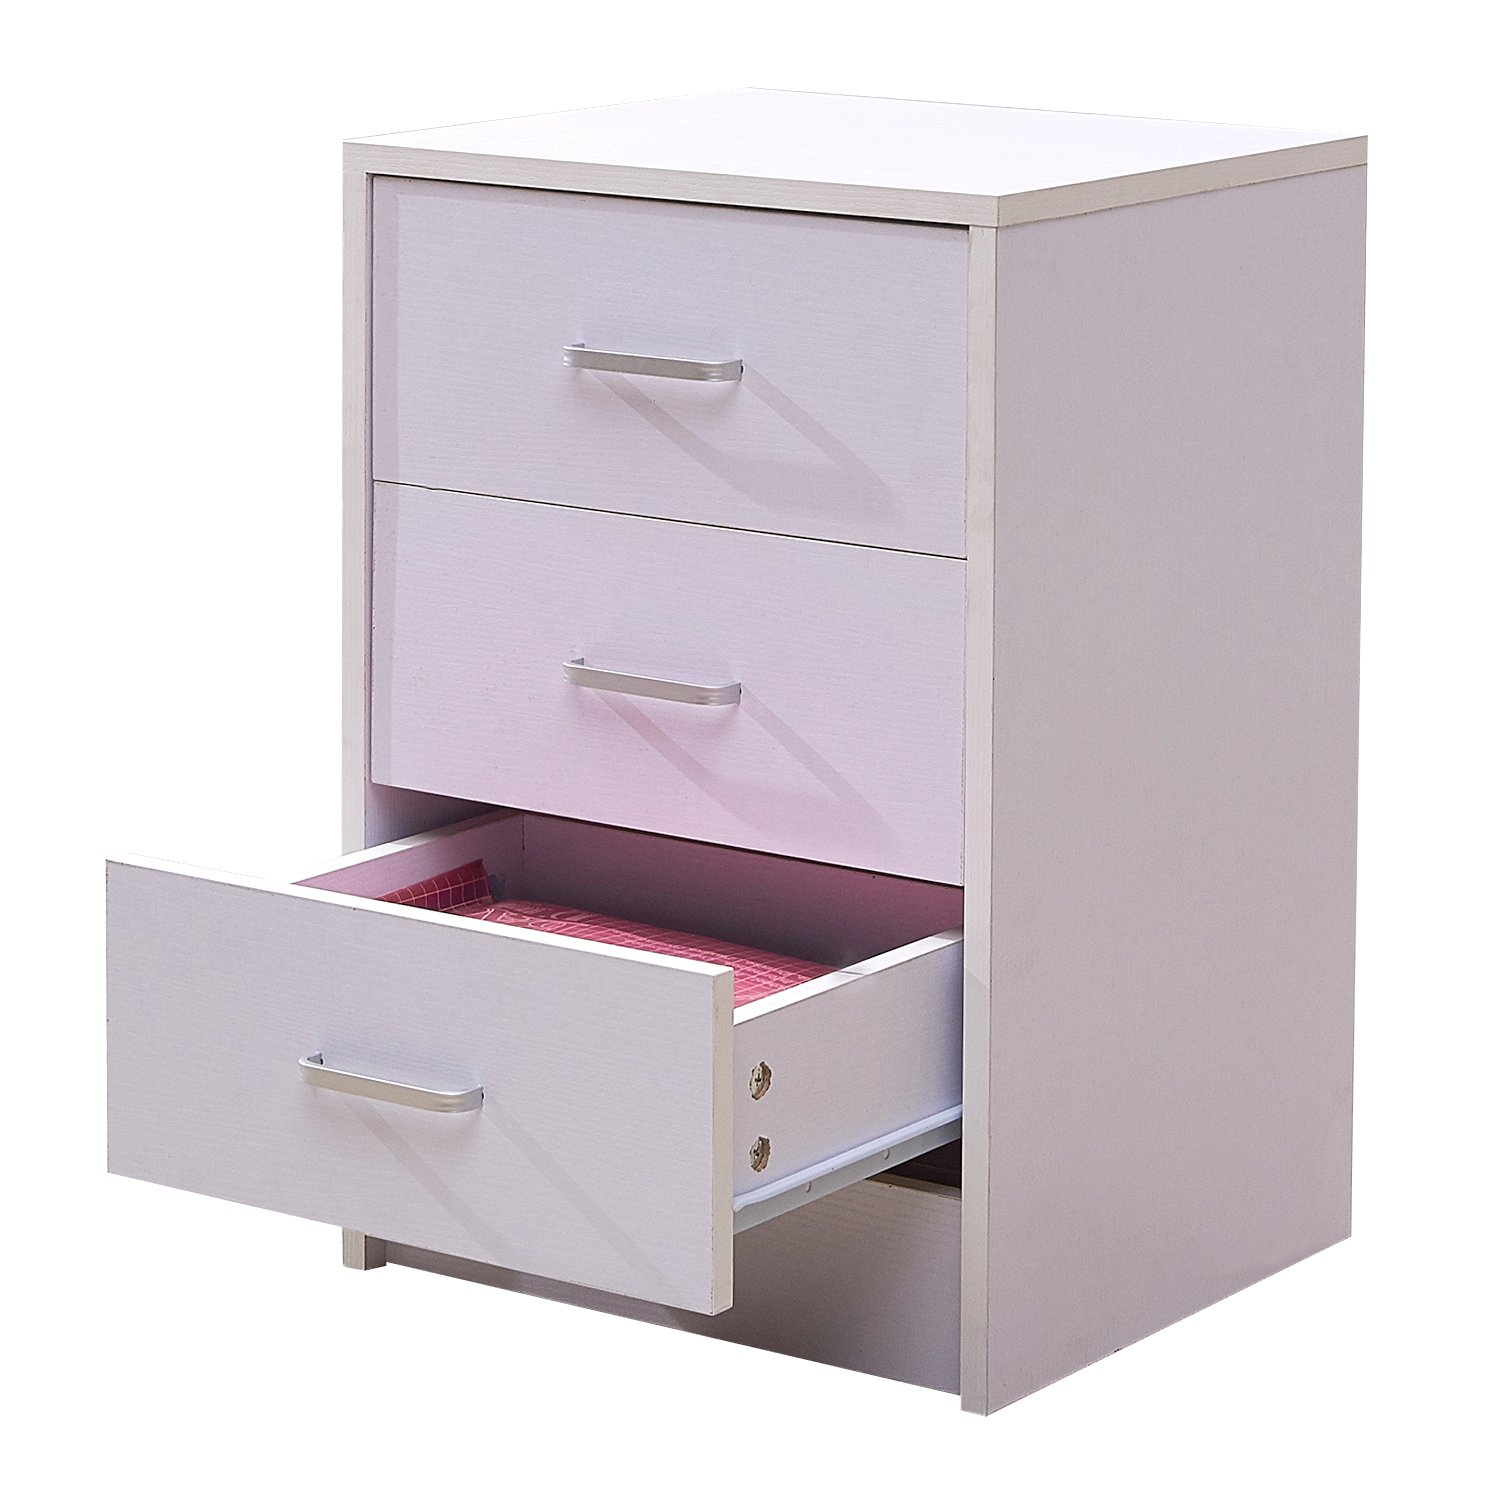 GreenForest Vertical File Cabinet 3 Drawers Wood for Home Office File Storage Under Desk Letter Size/A4 (White)